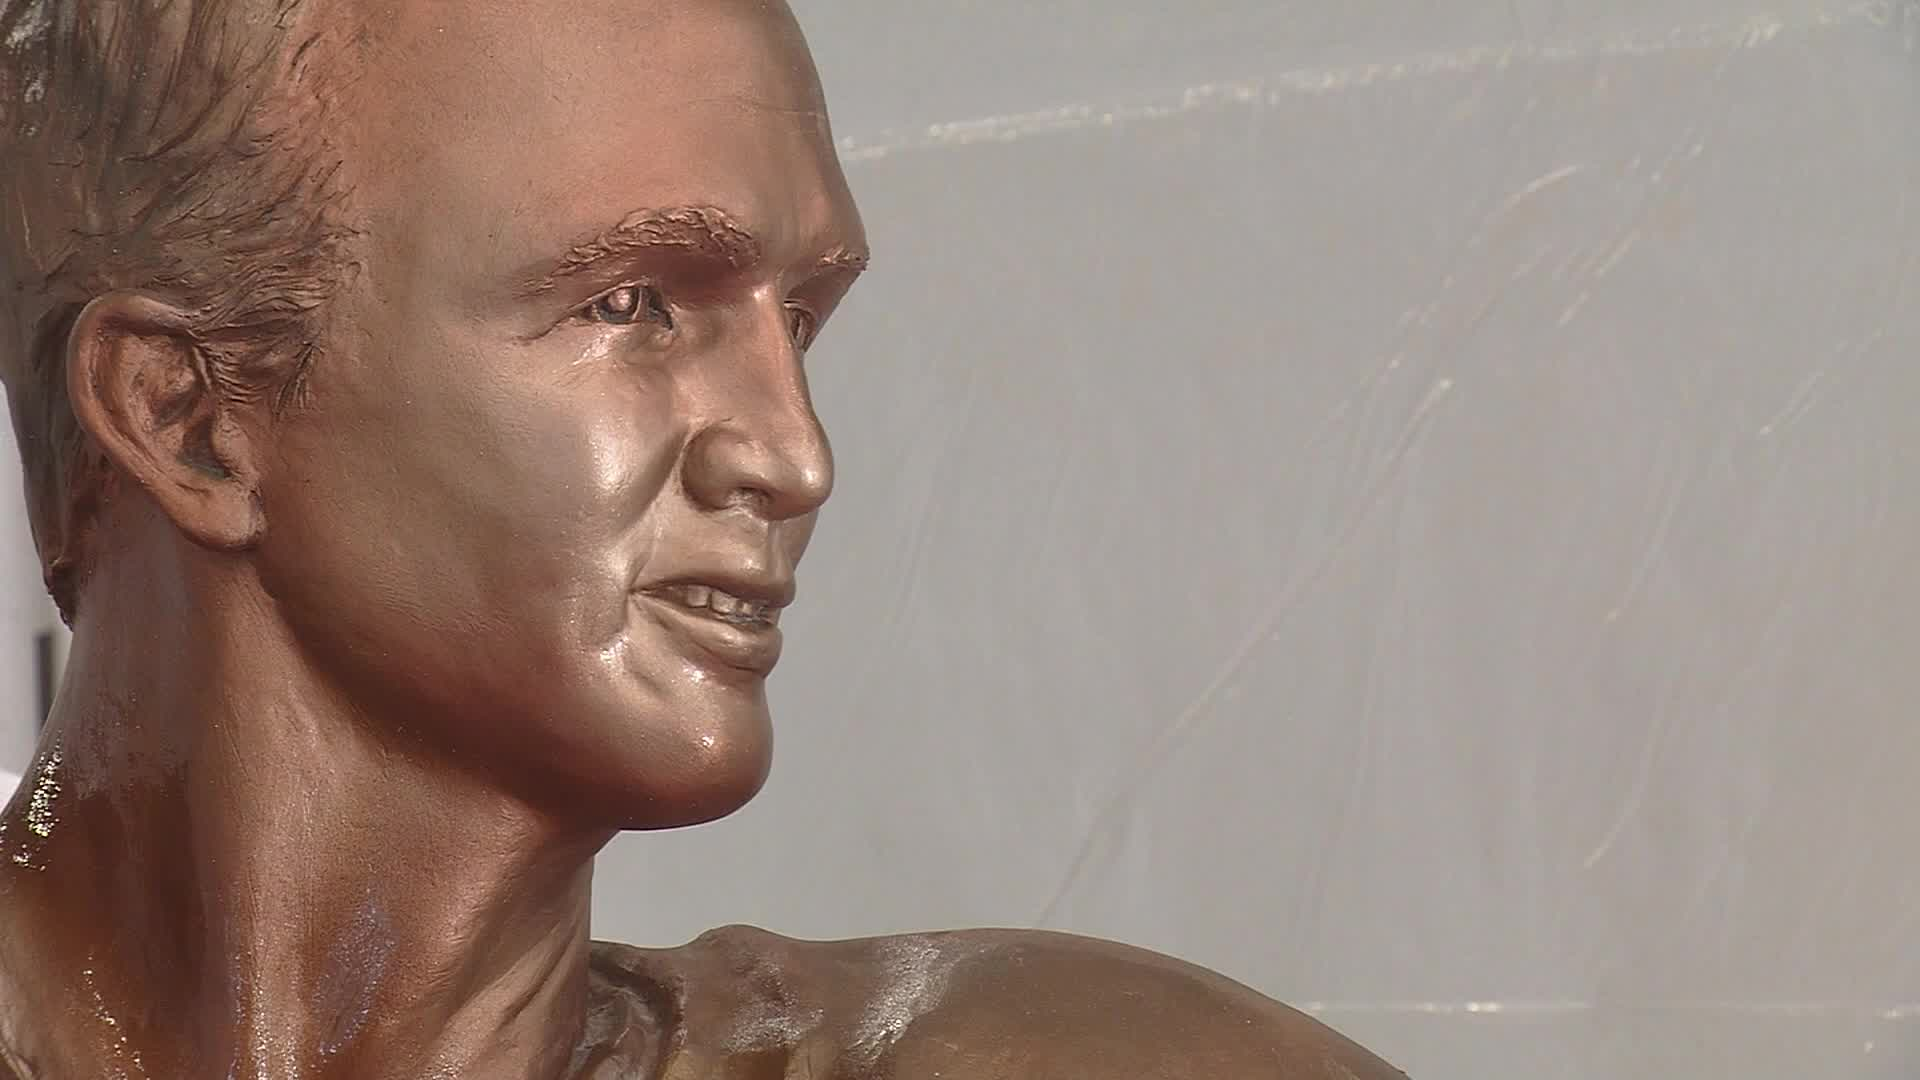 Chocolate Peyton Manning sculpture for sale for $6,000